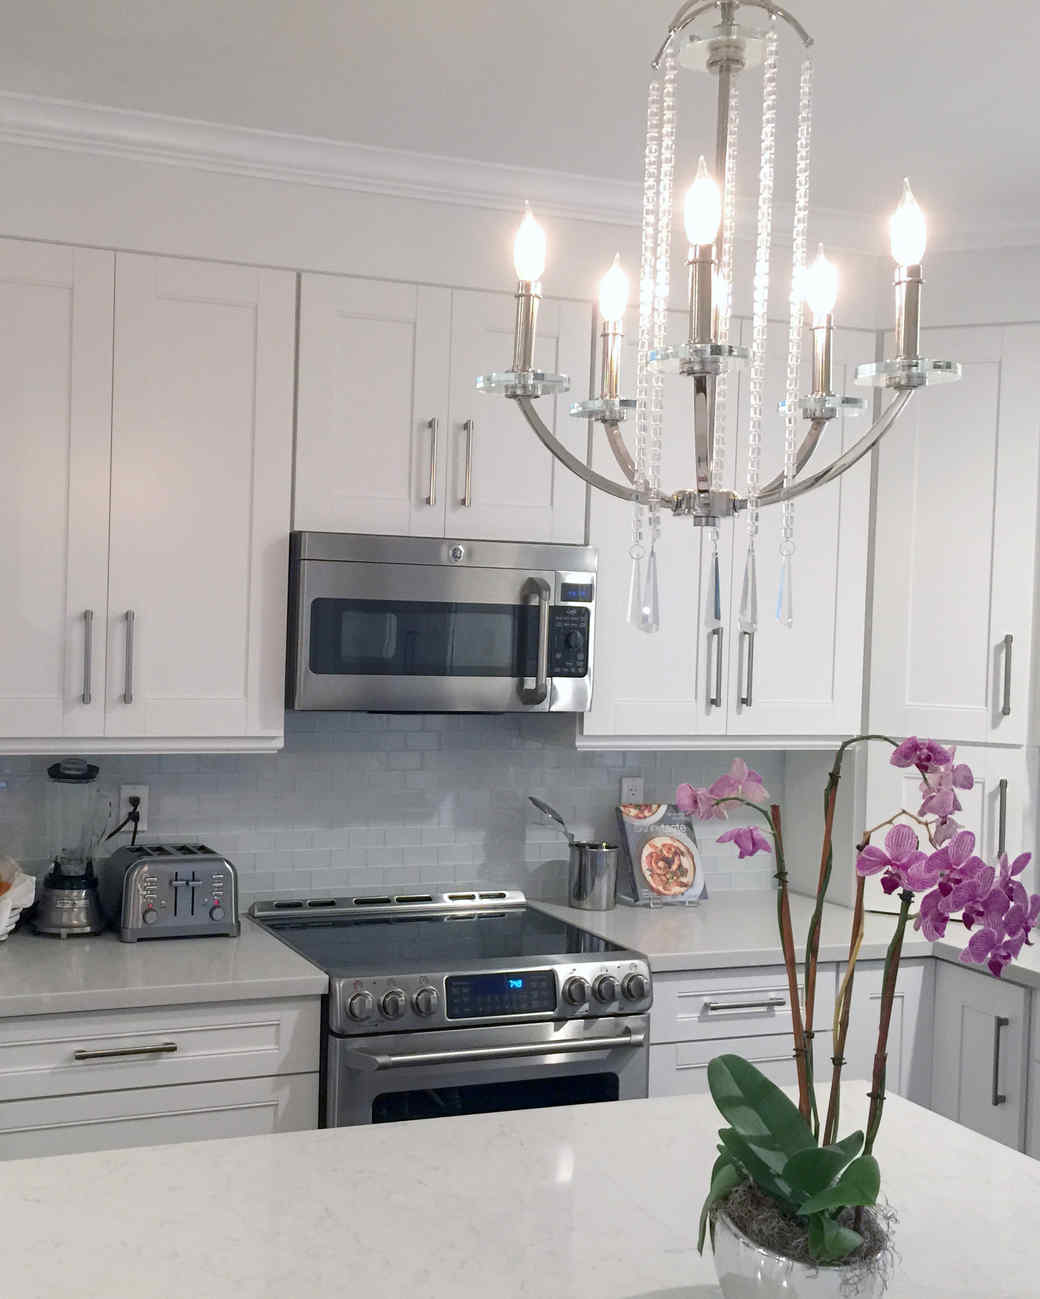 6 Bright Kitchen Lighting Ideas: See How New Fixtures